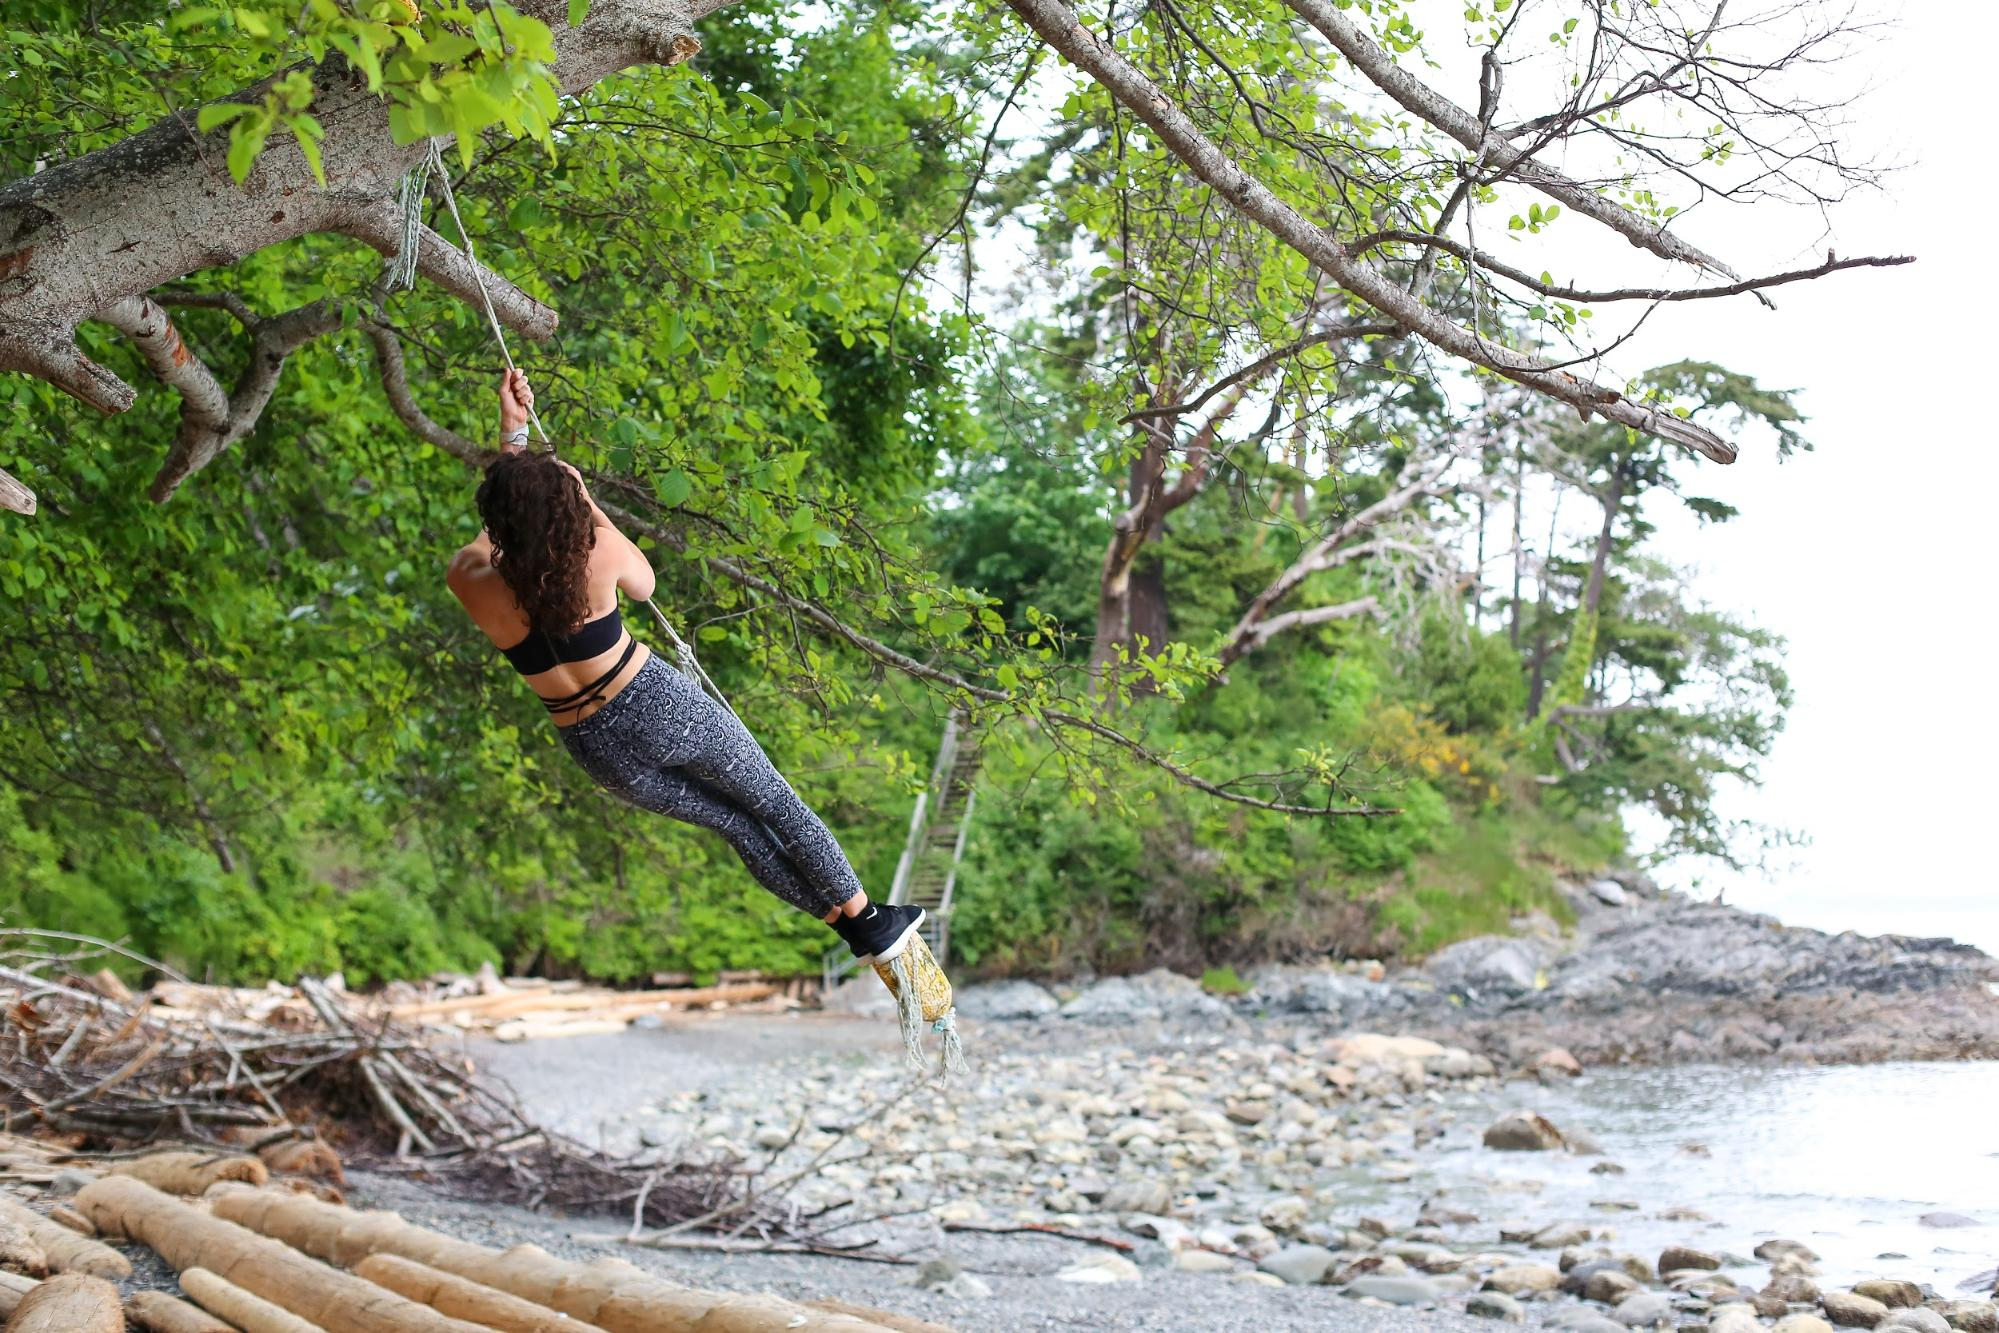 A woman swings from a rope tied to a tree over a rocky riverbank.